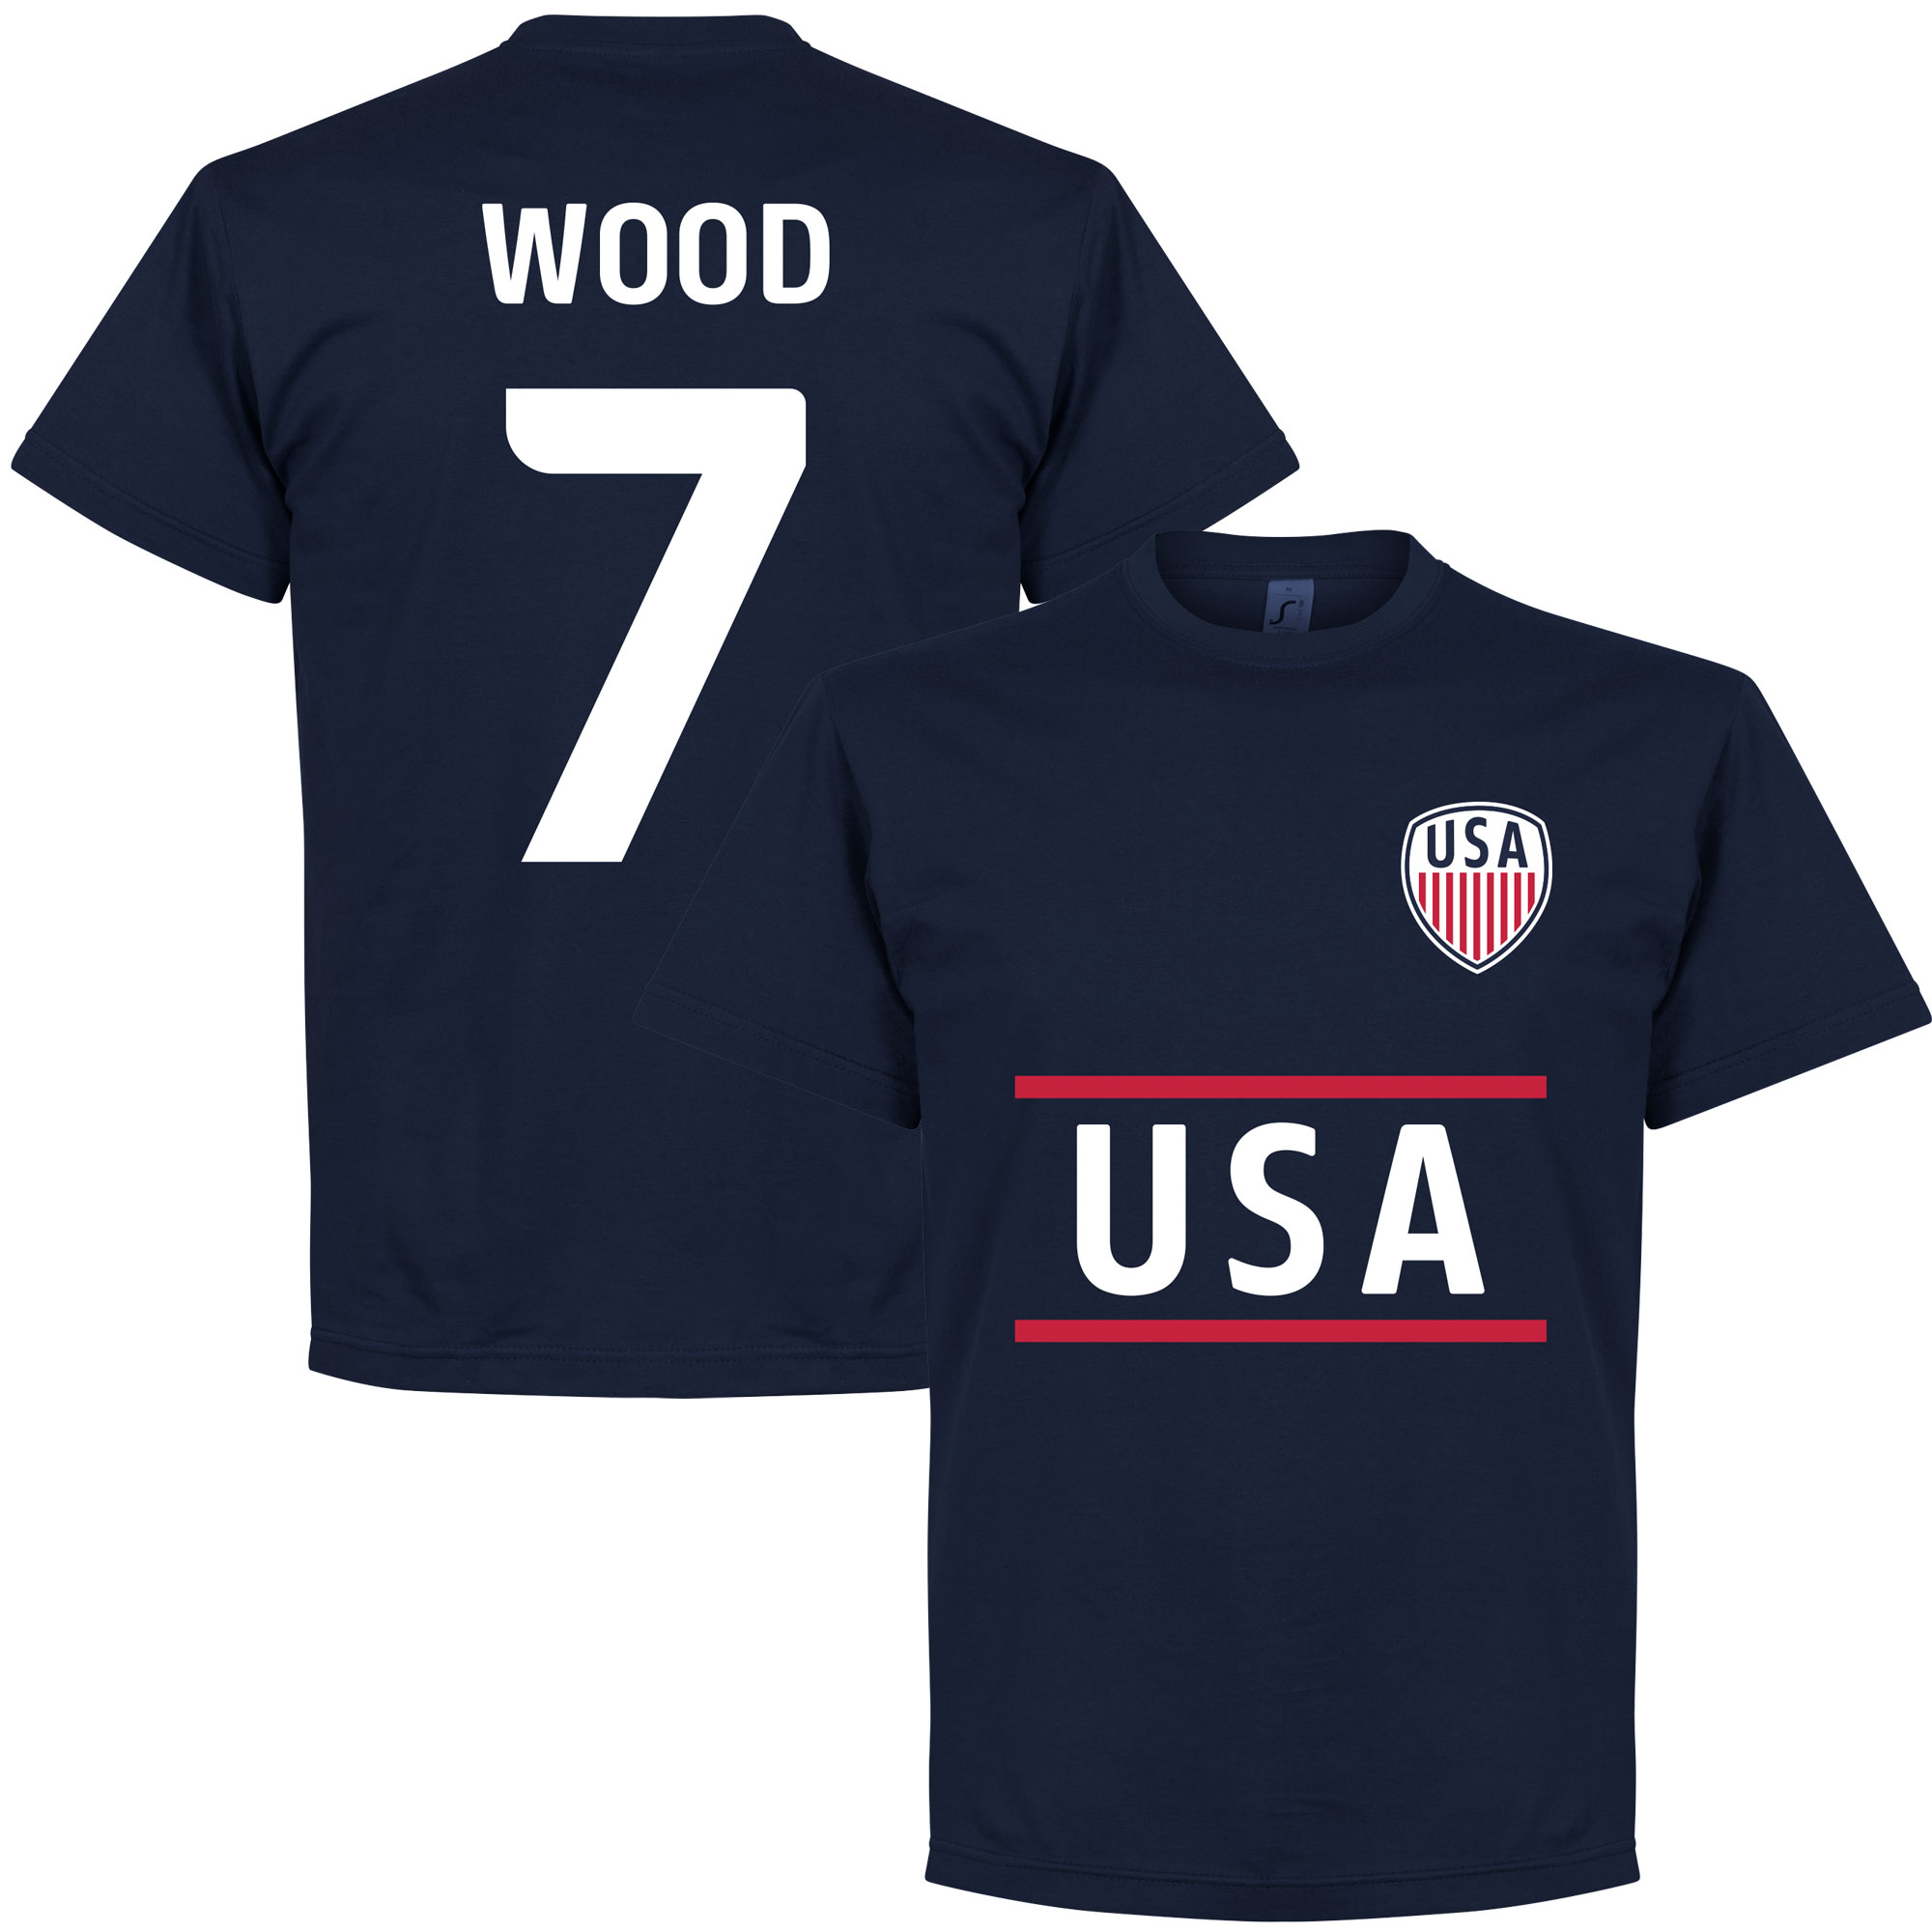 USA Wood Team T-Shirt